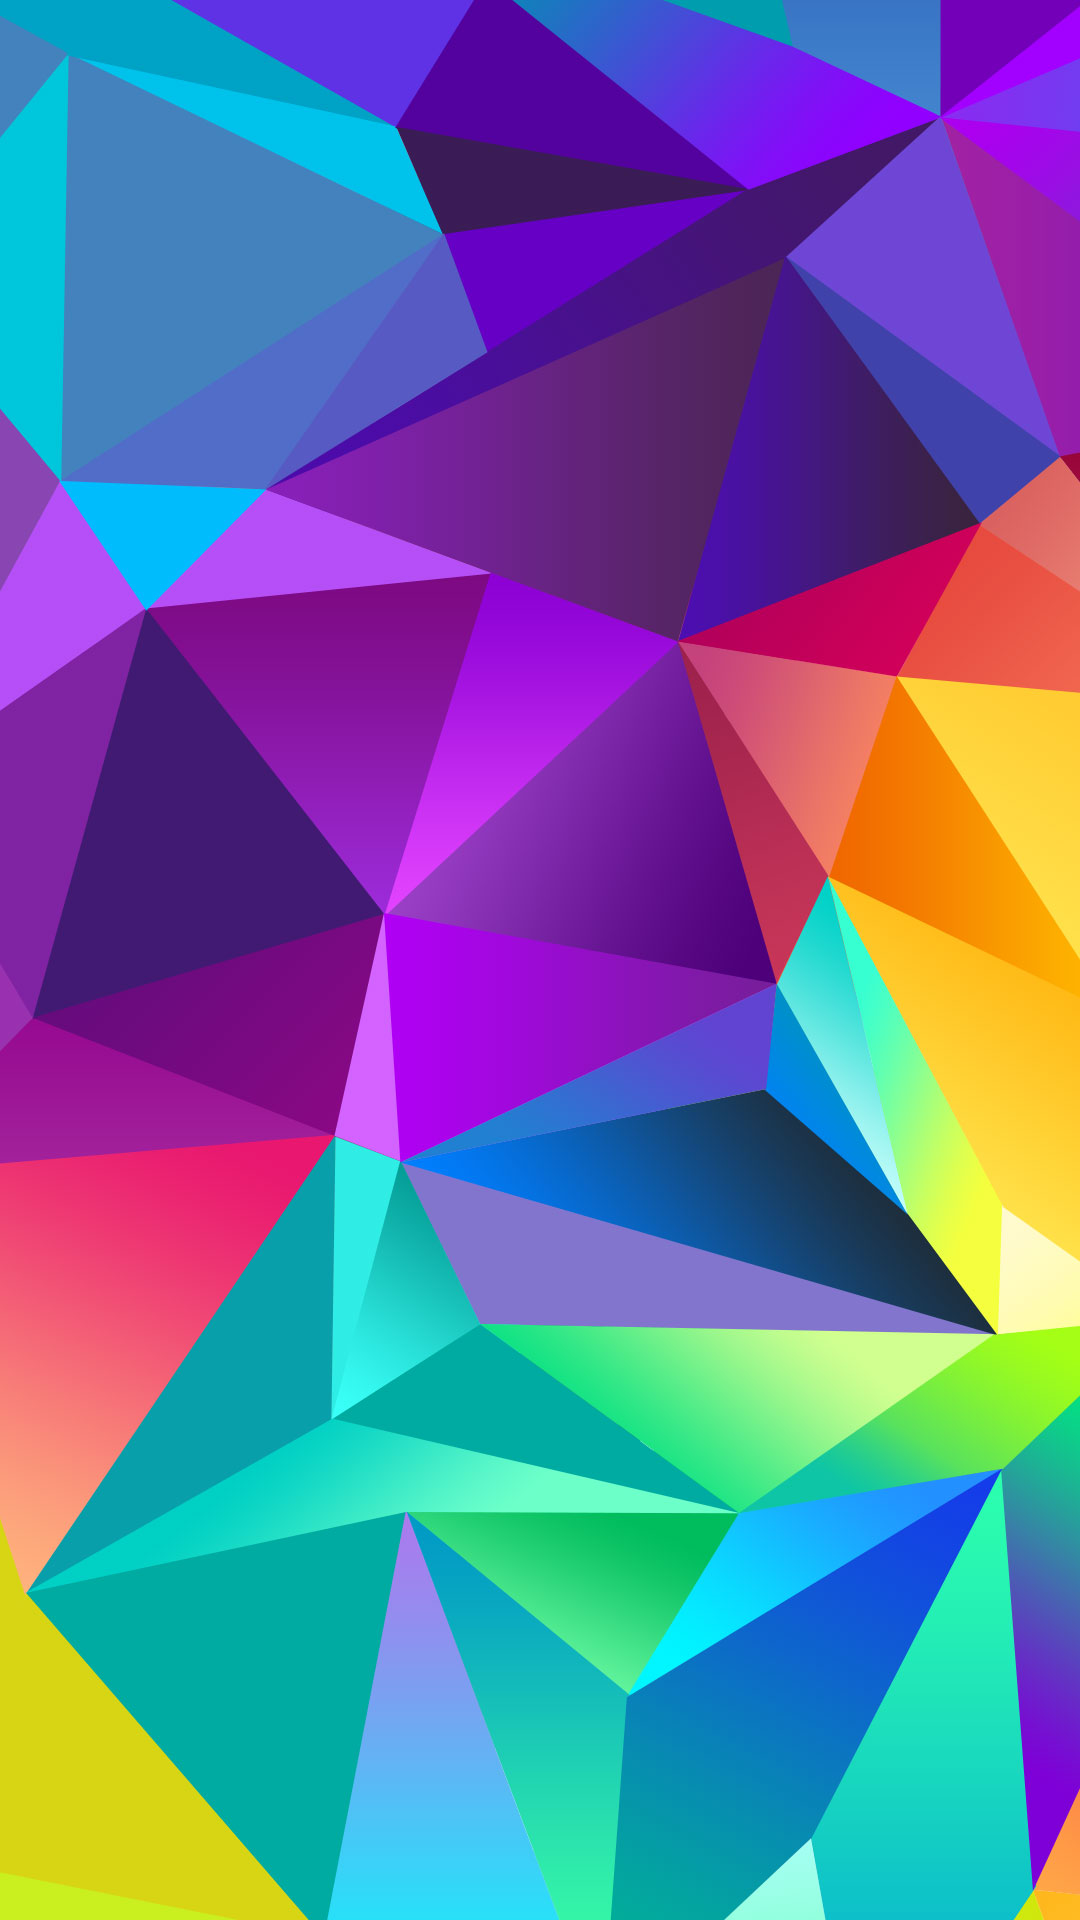 Colorful Polygon IPhone 6 Plus Wallpaper